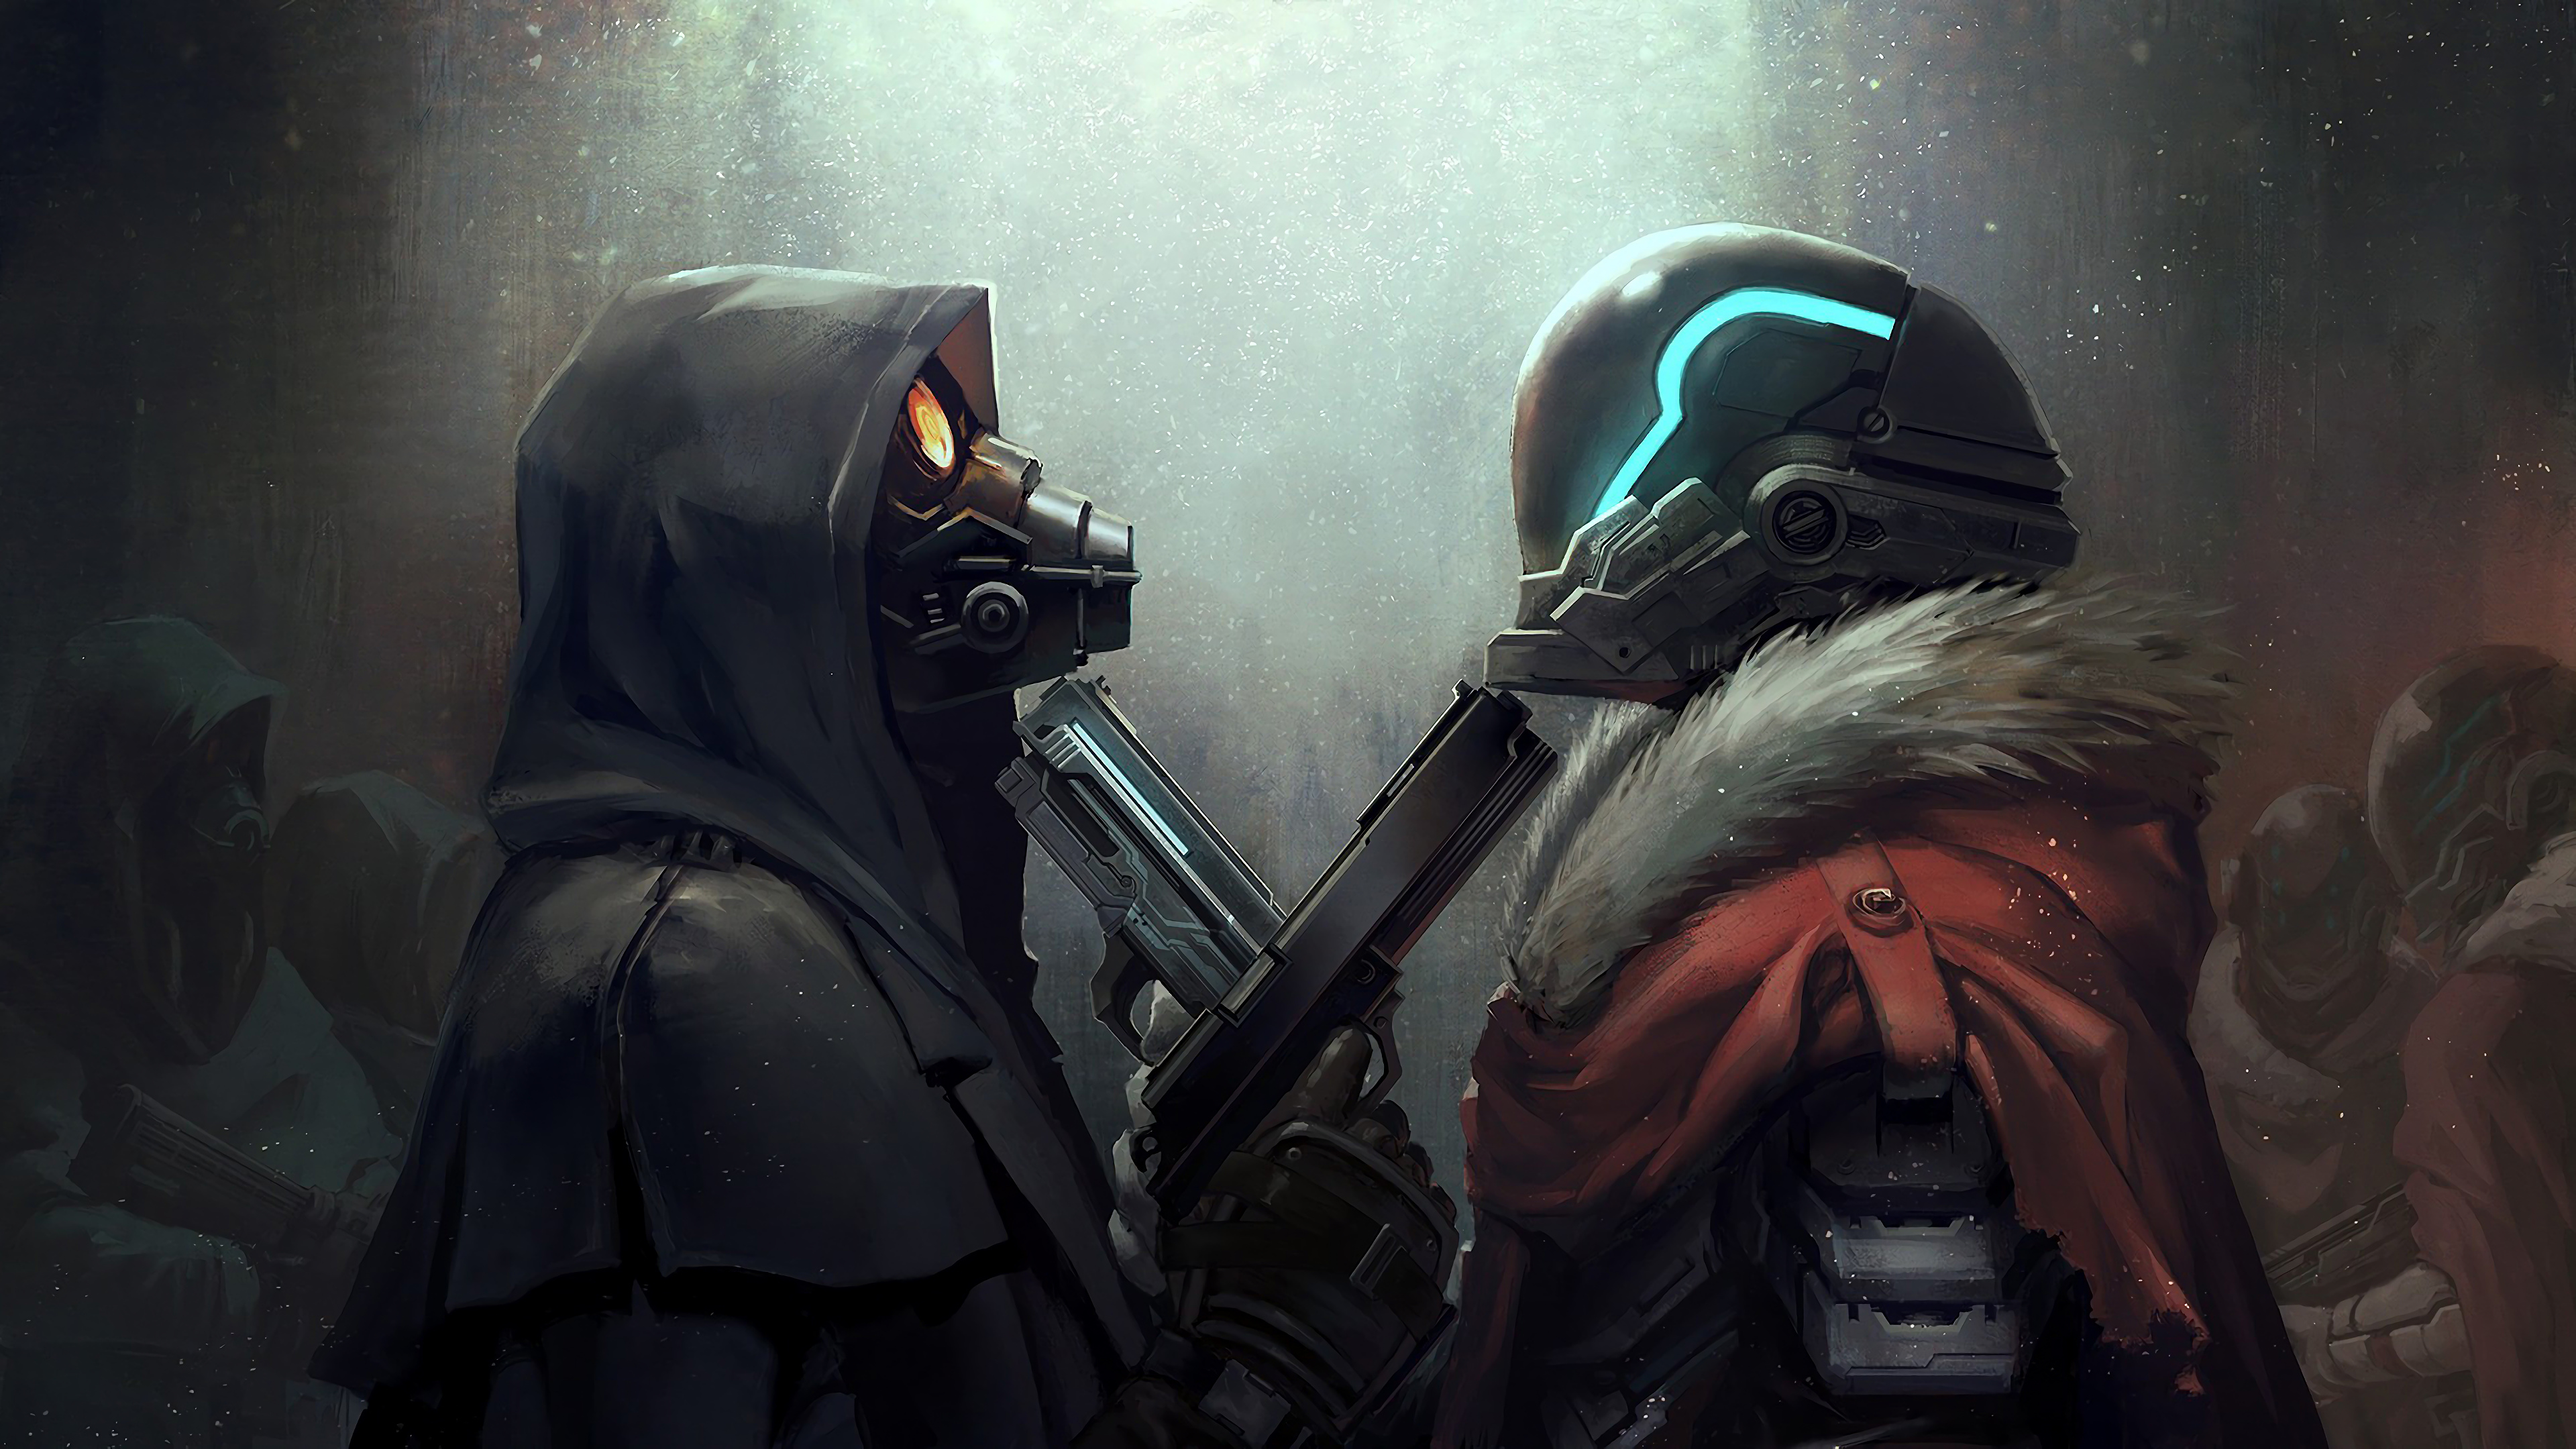 stand off 1563222203 - Stand Off - hd-wallpapers, digital art wallpapers, artwork wallpapers, artstation wallpapers, artist wallpapers, 4k-wallpapers